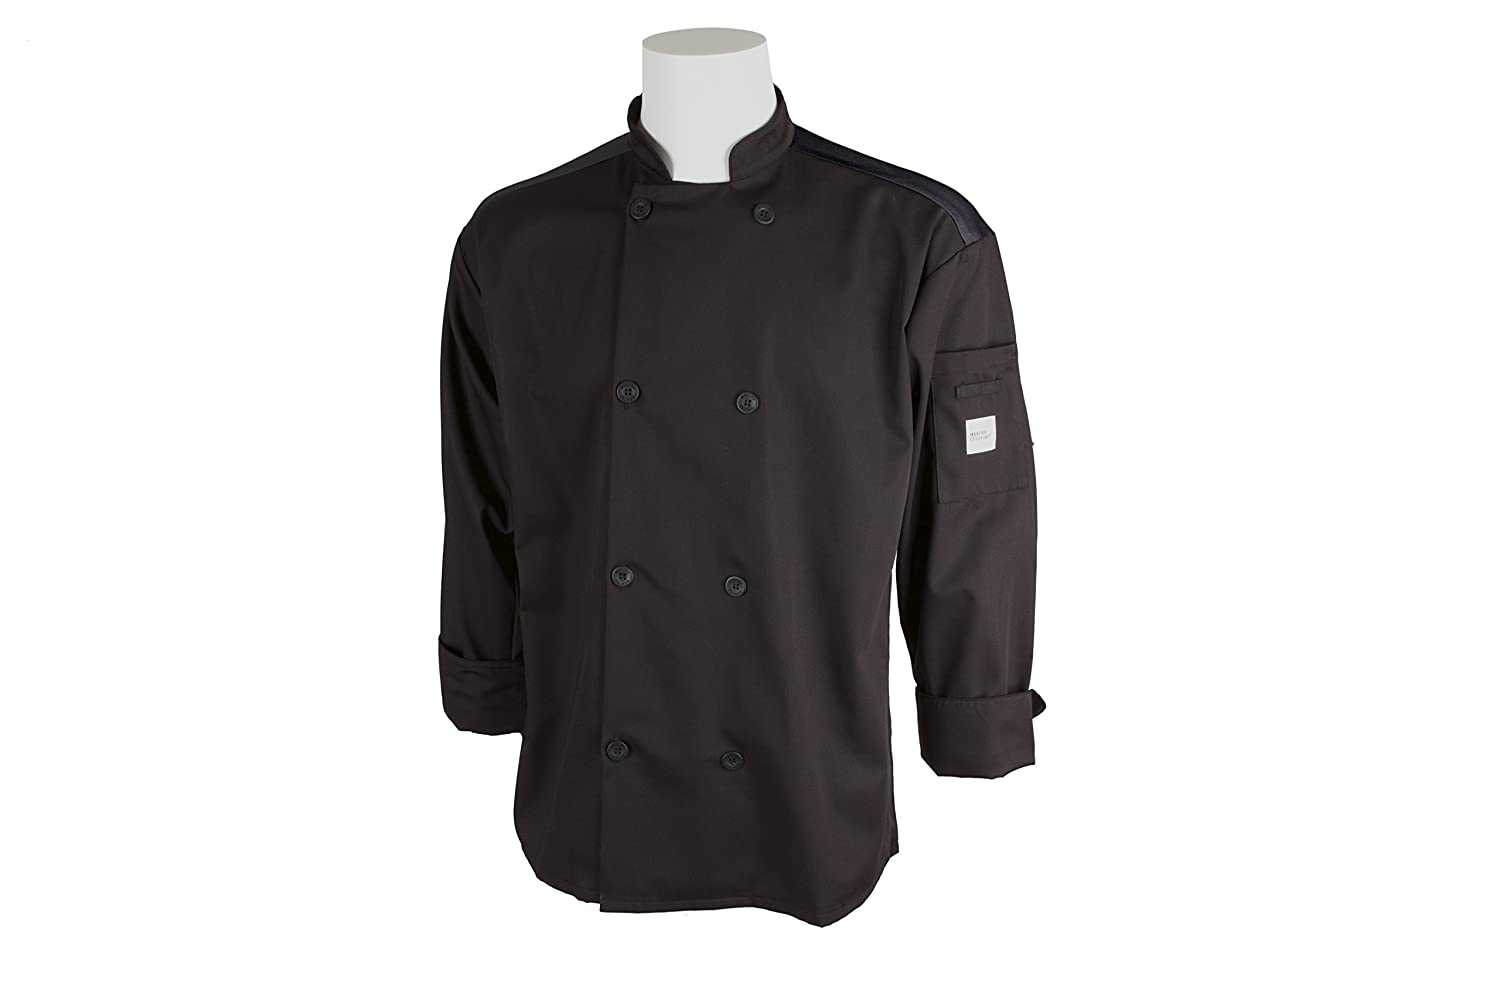 Mercer Culinary M60017BKS Millennia Air Mens Black Cook Jacket with Full Mesh Back Small